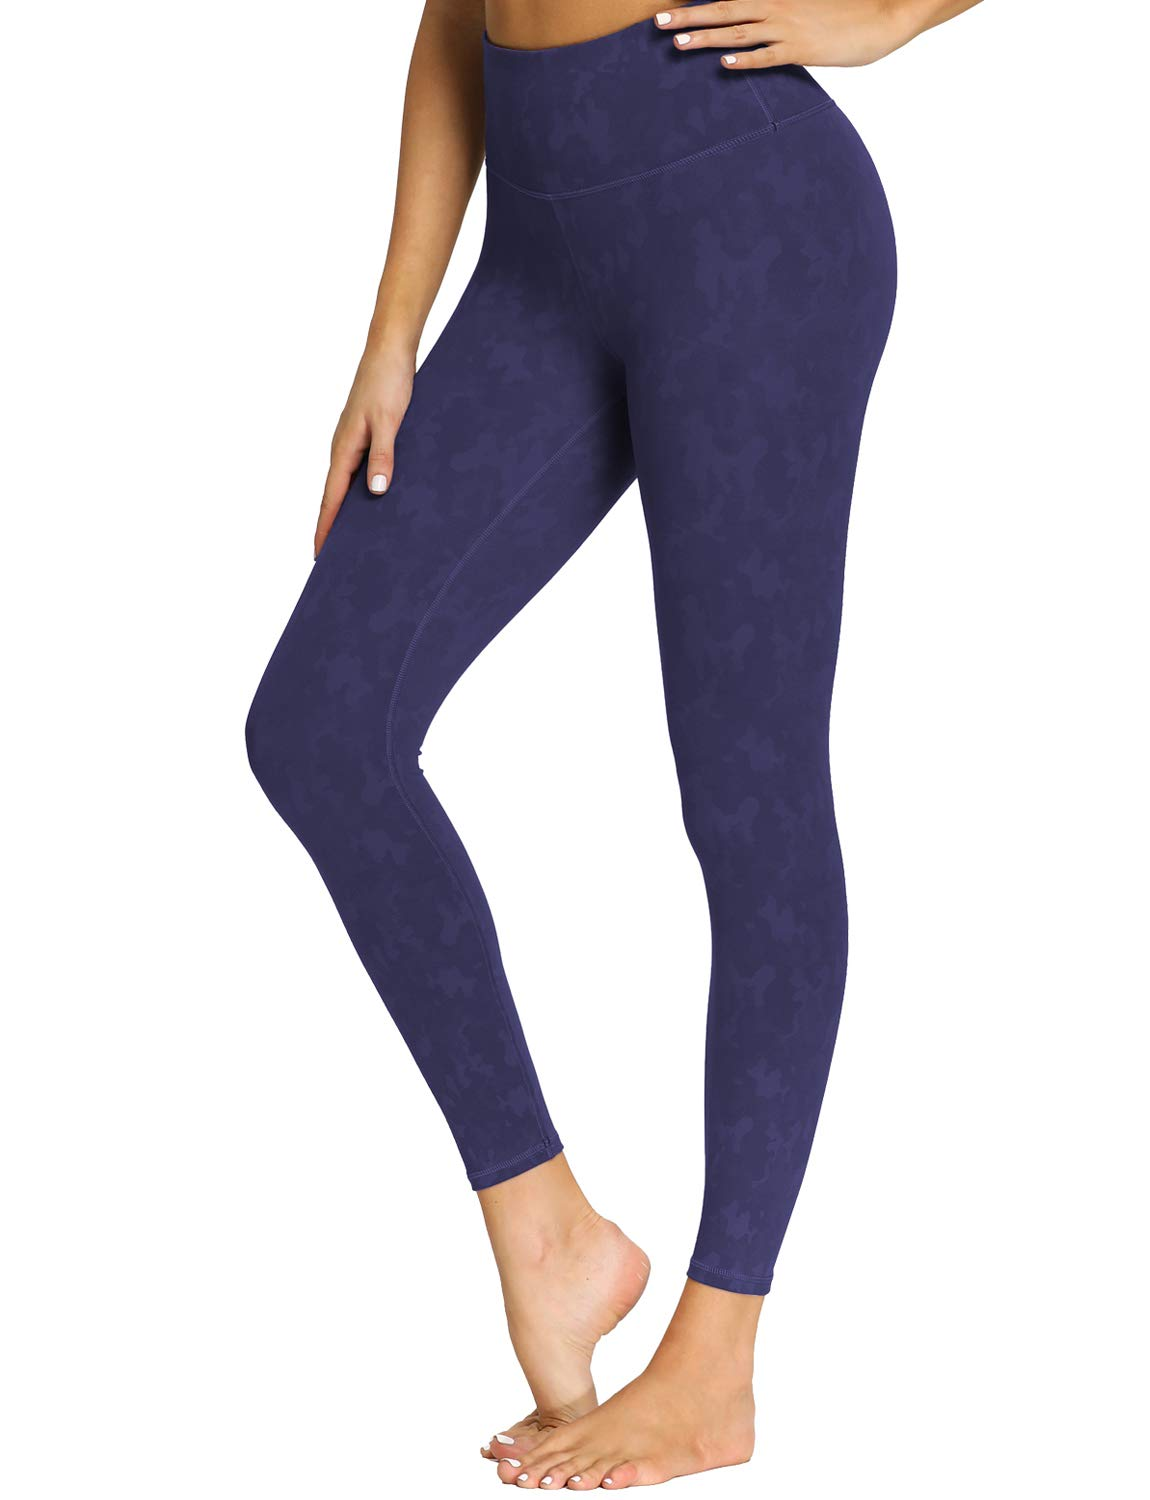 Locore High Waist Yoga Leggings Pants Workout Leggings for Women with Tummy Control